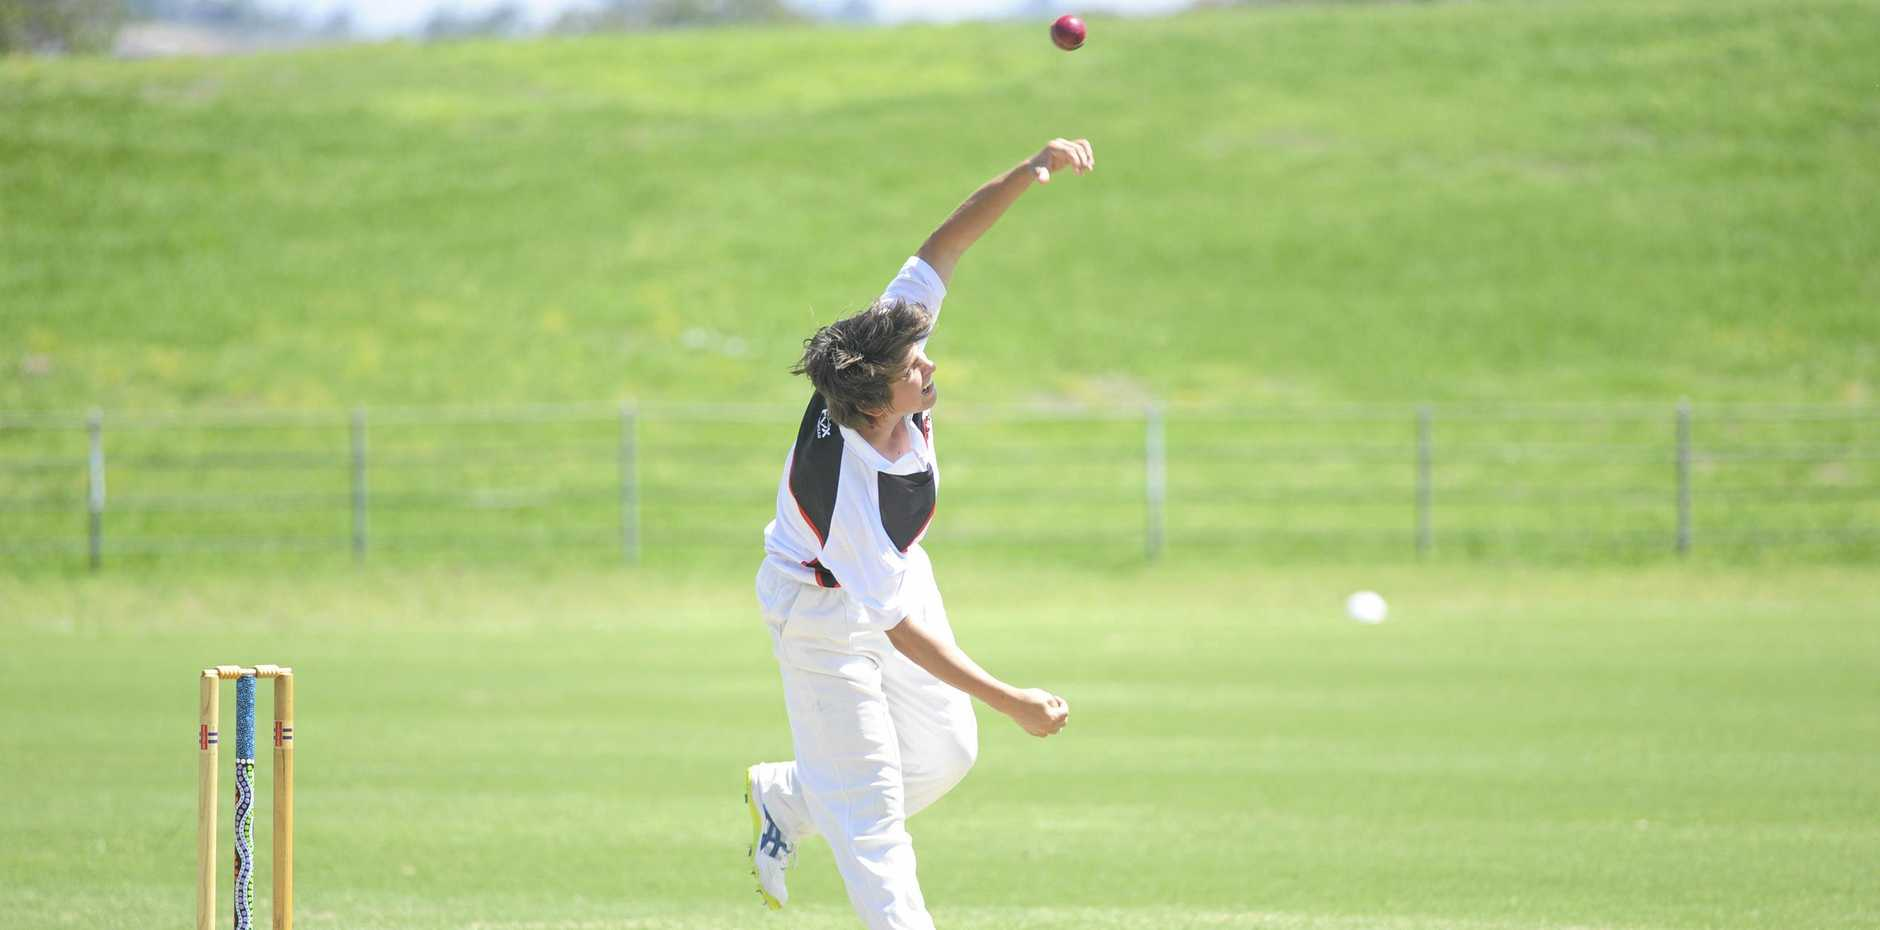 The Gumbaynggirr-design middle stump during last week's Coutts- Coffs v Sawtell match at McKittrick park.